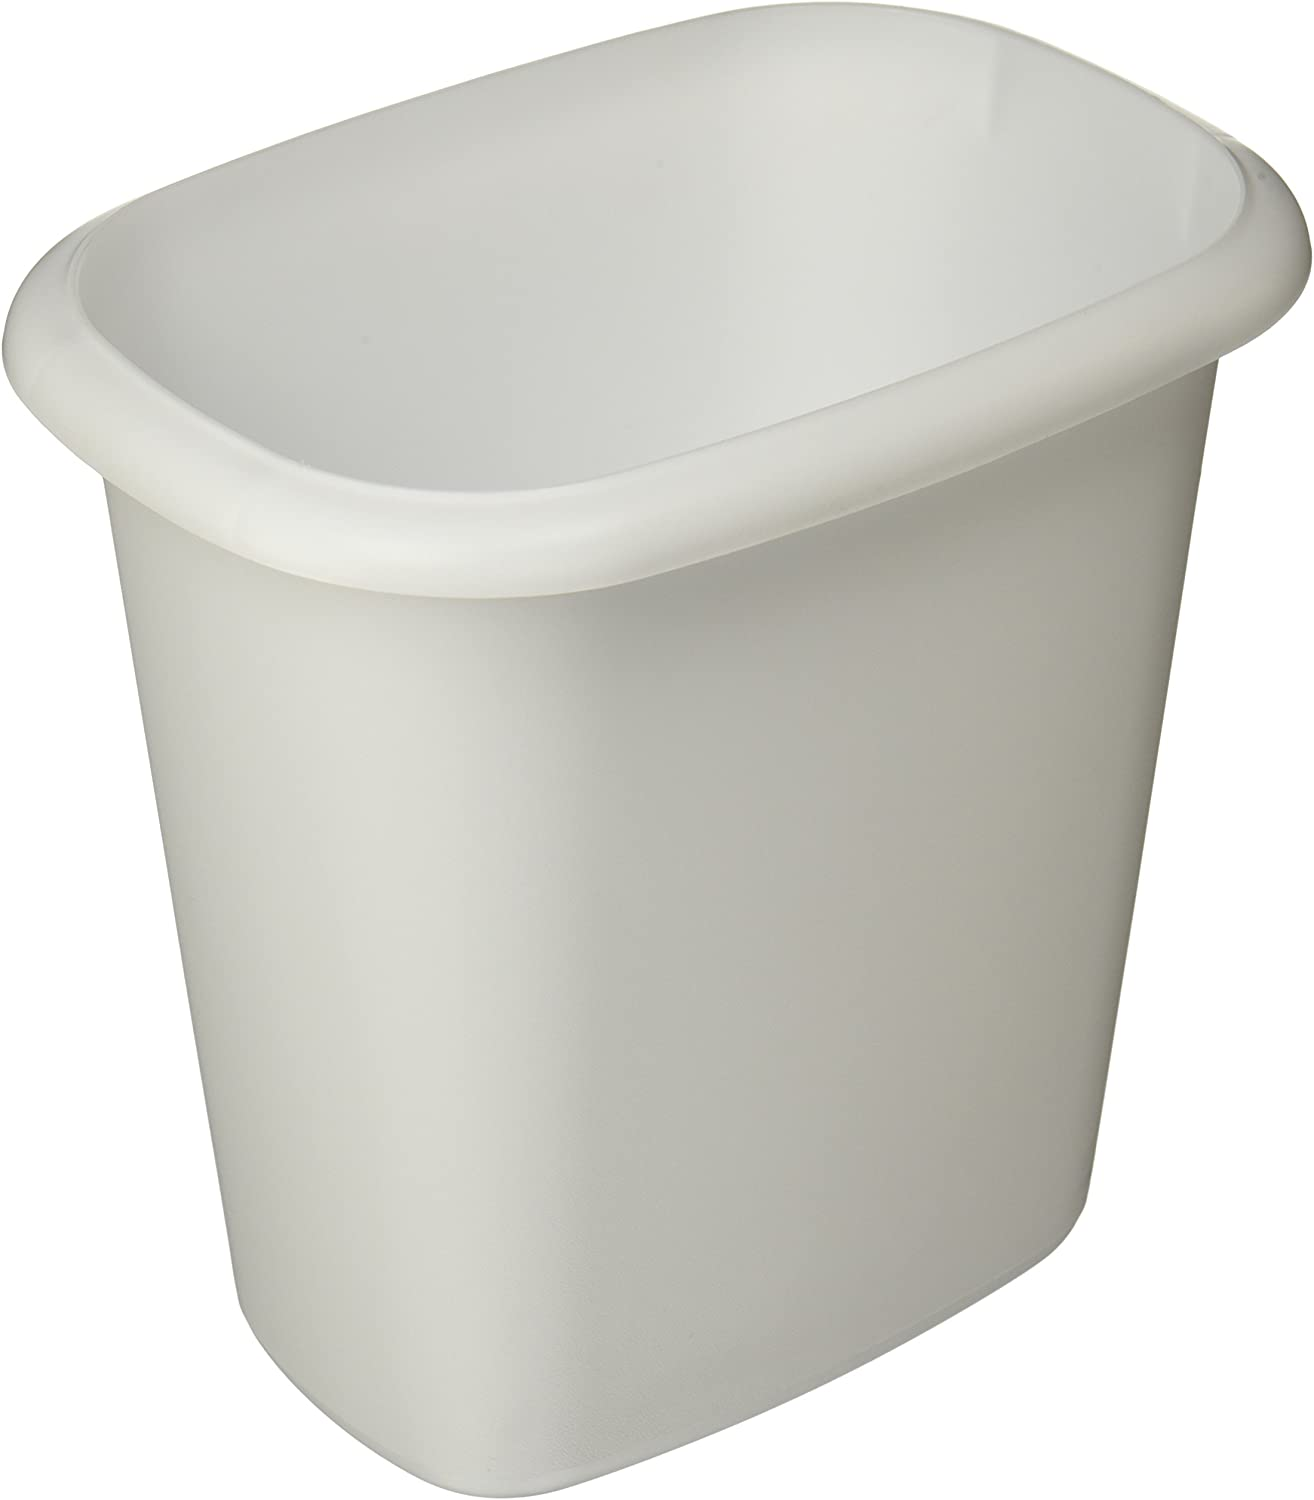 Rubbermaid Vanity Trash Can Wastebasket 6.0 quarts (FG295300WHT)